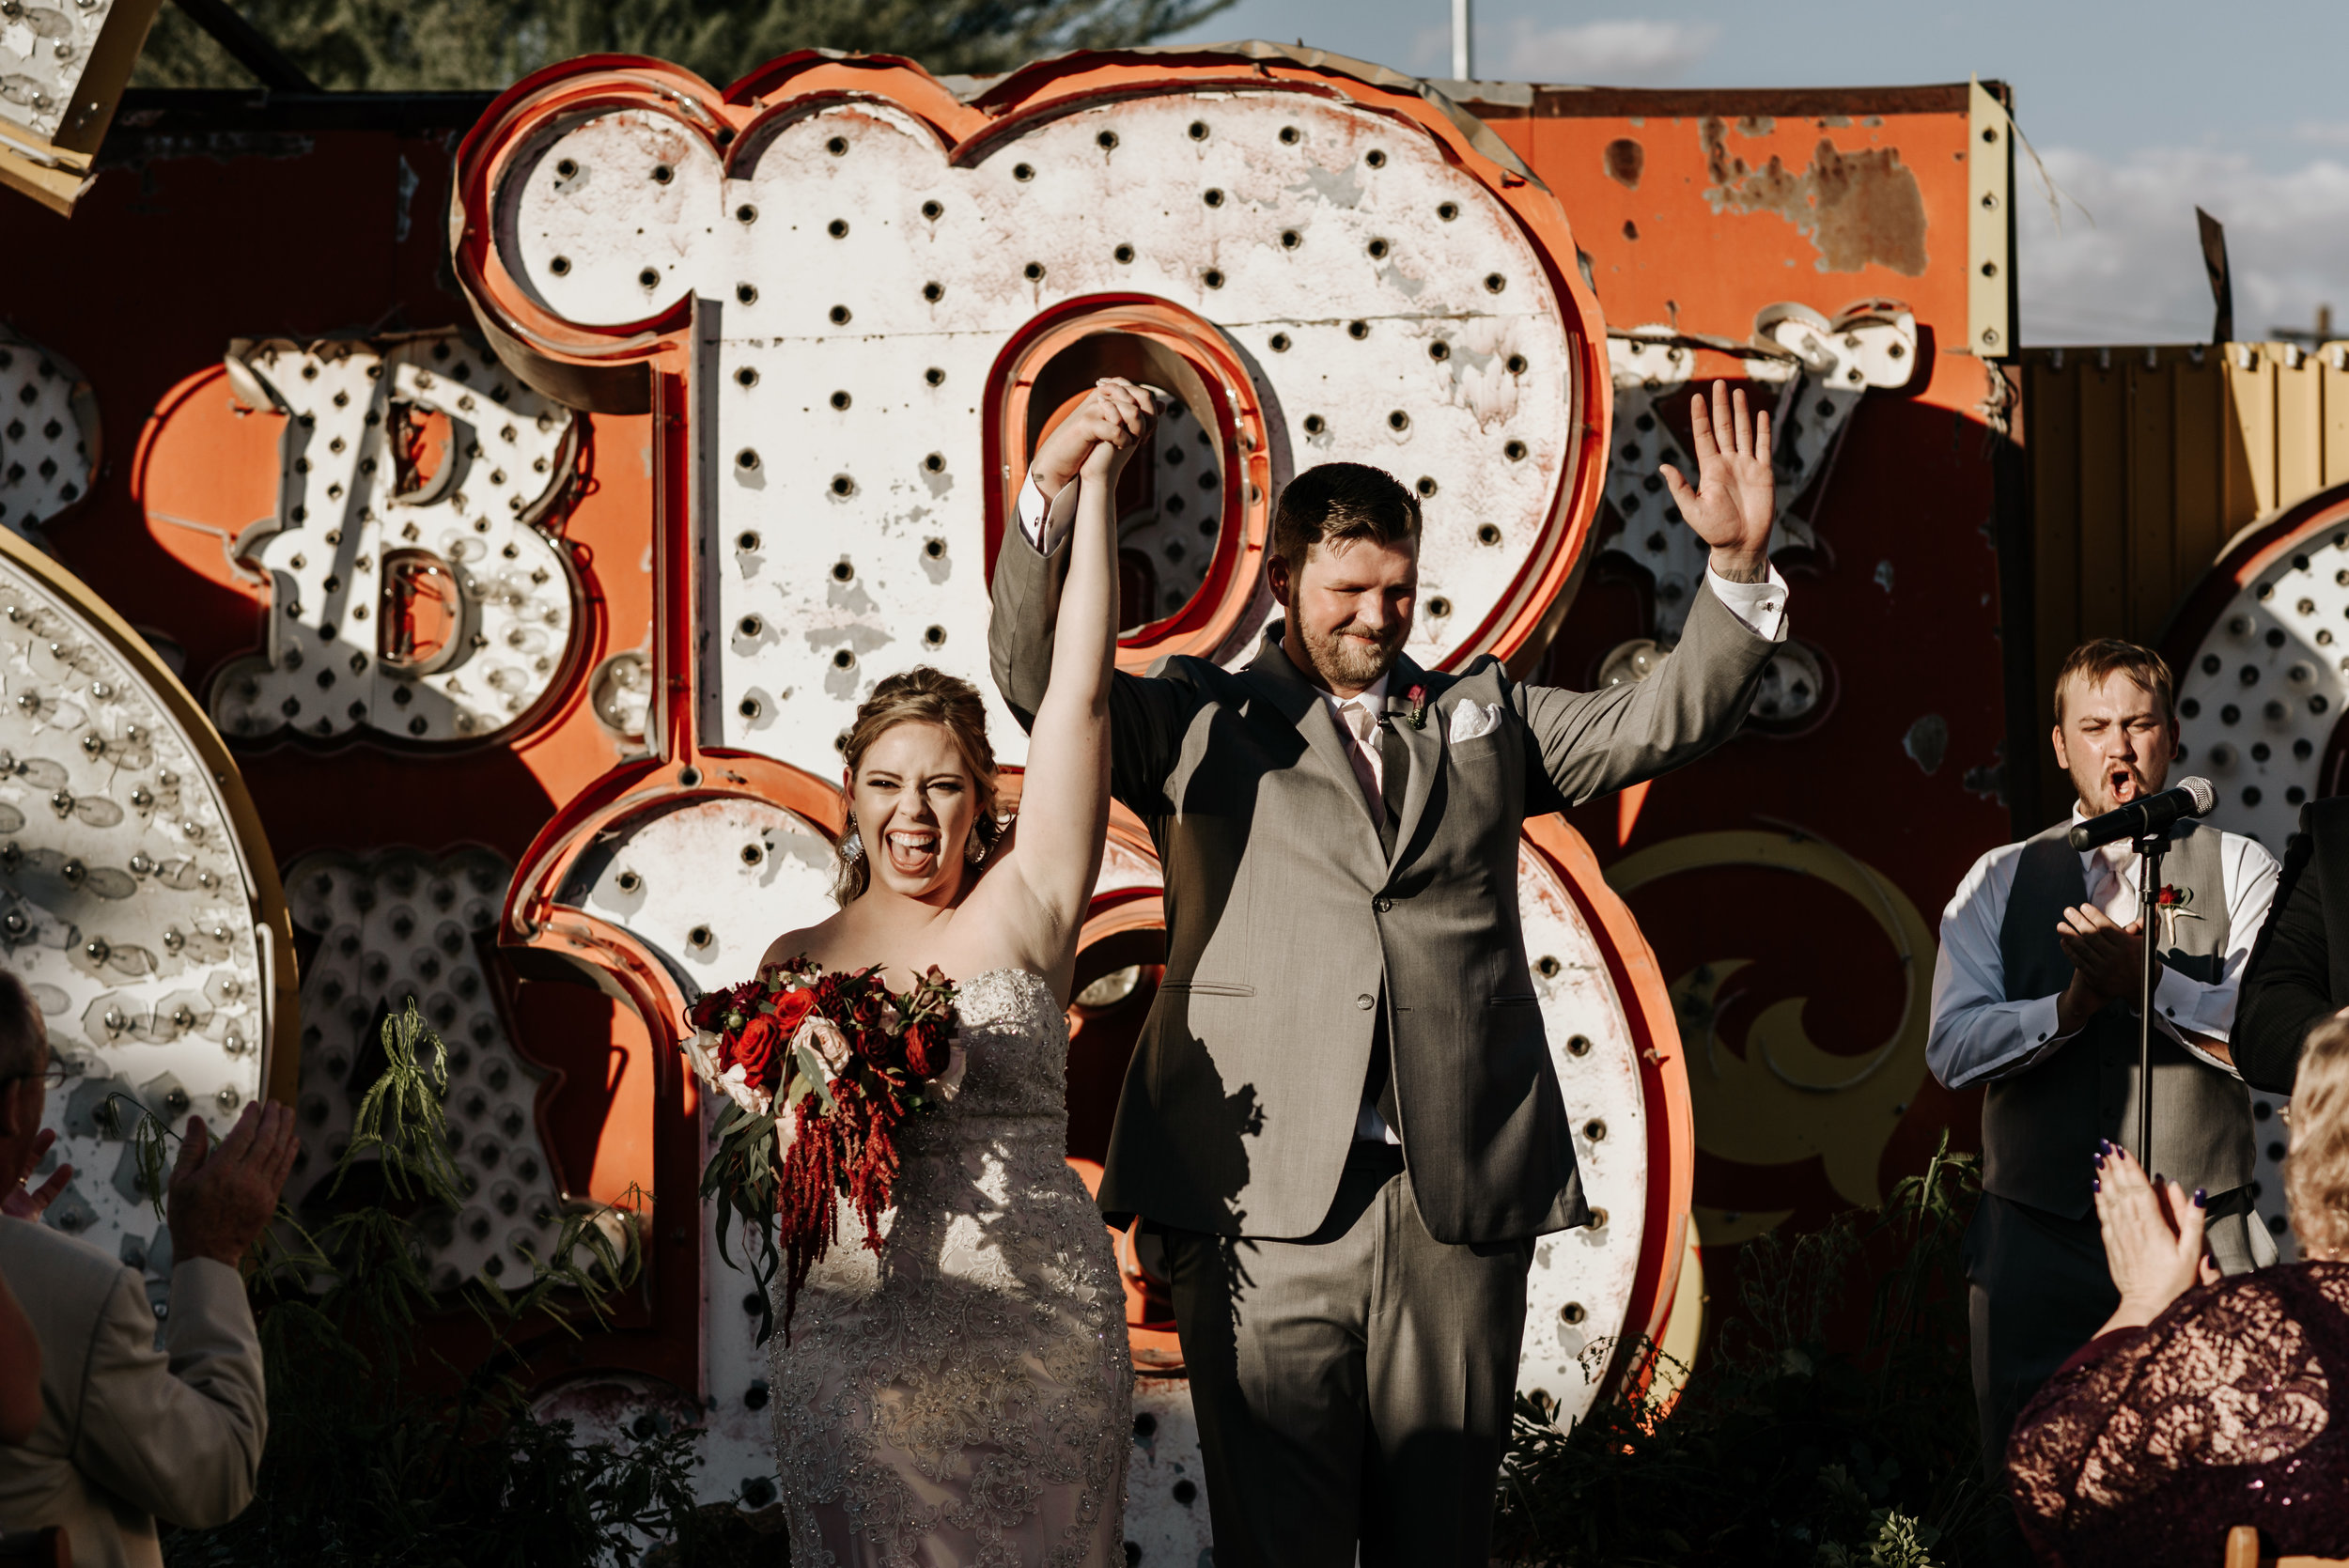 Neon-Museum-Wedding-Las-Vegas-Nevada-Golden-Nugget-Photography-by-V-Ally-and-Dan-6685.jpg